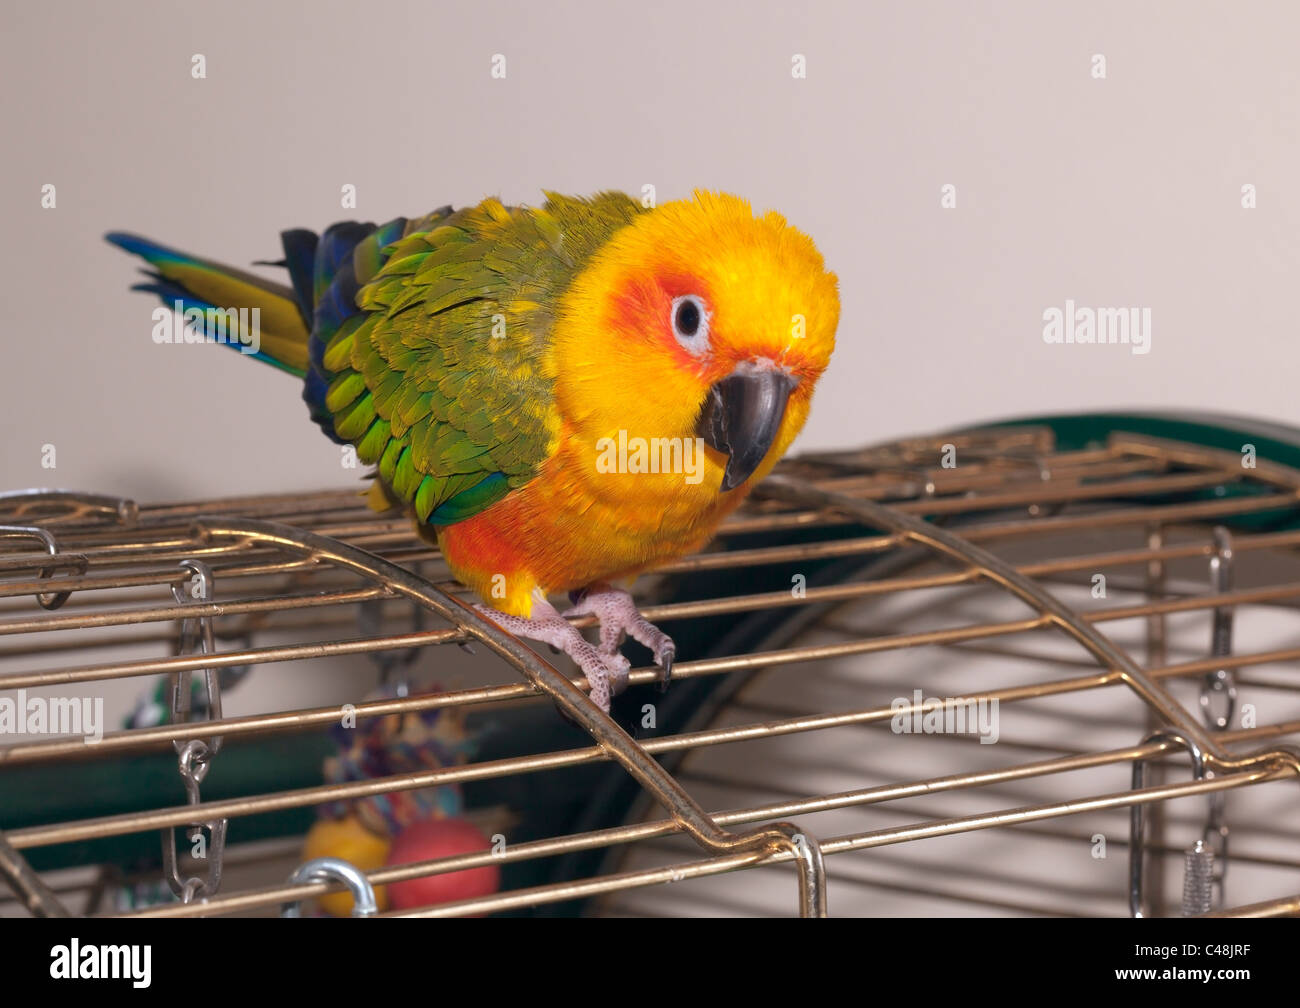 Sun Conure Parrot in house - Stock Image